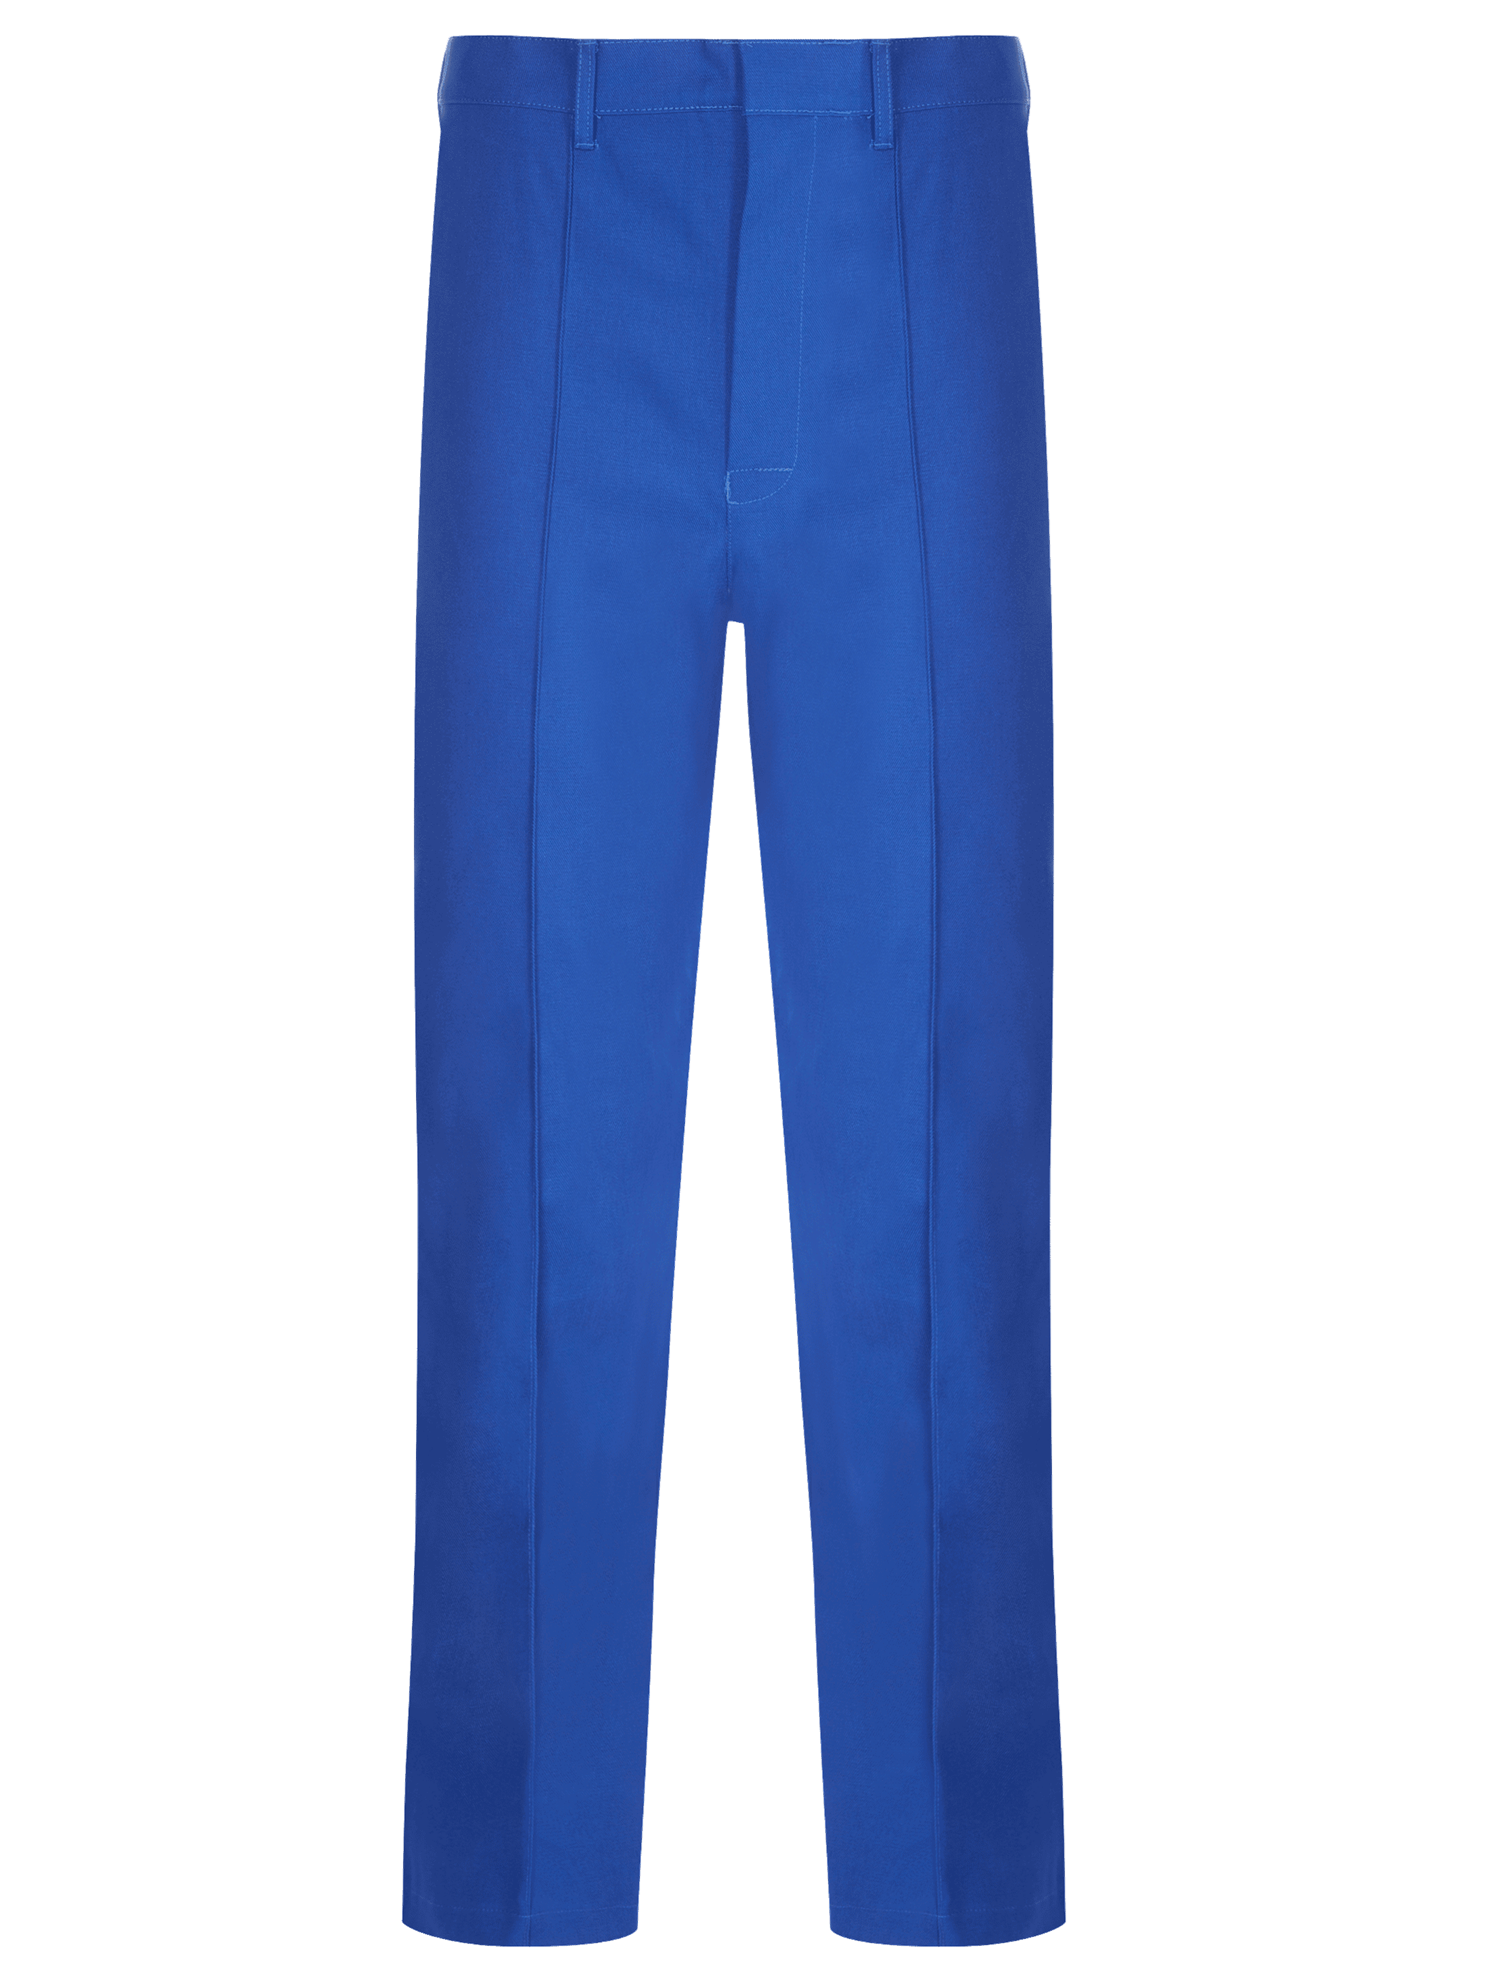 Picture of Trouser made with Zeus FR - Royal Blue